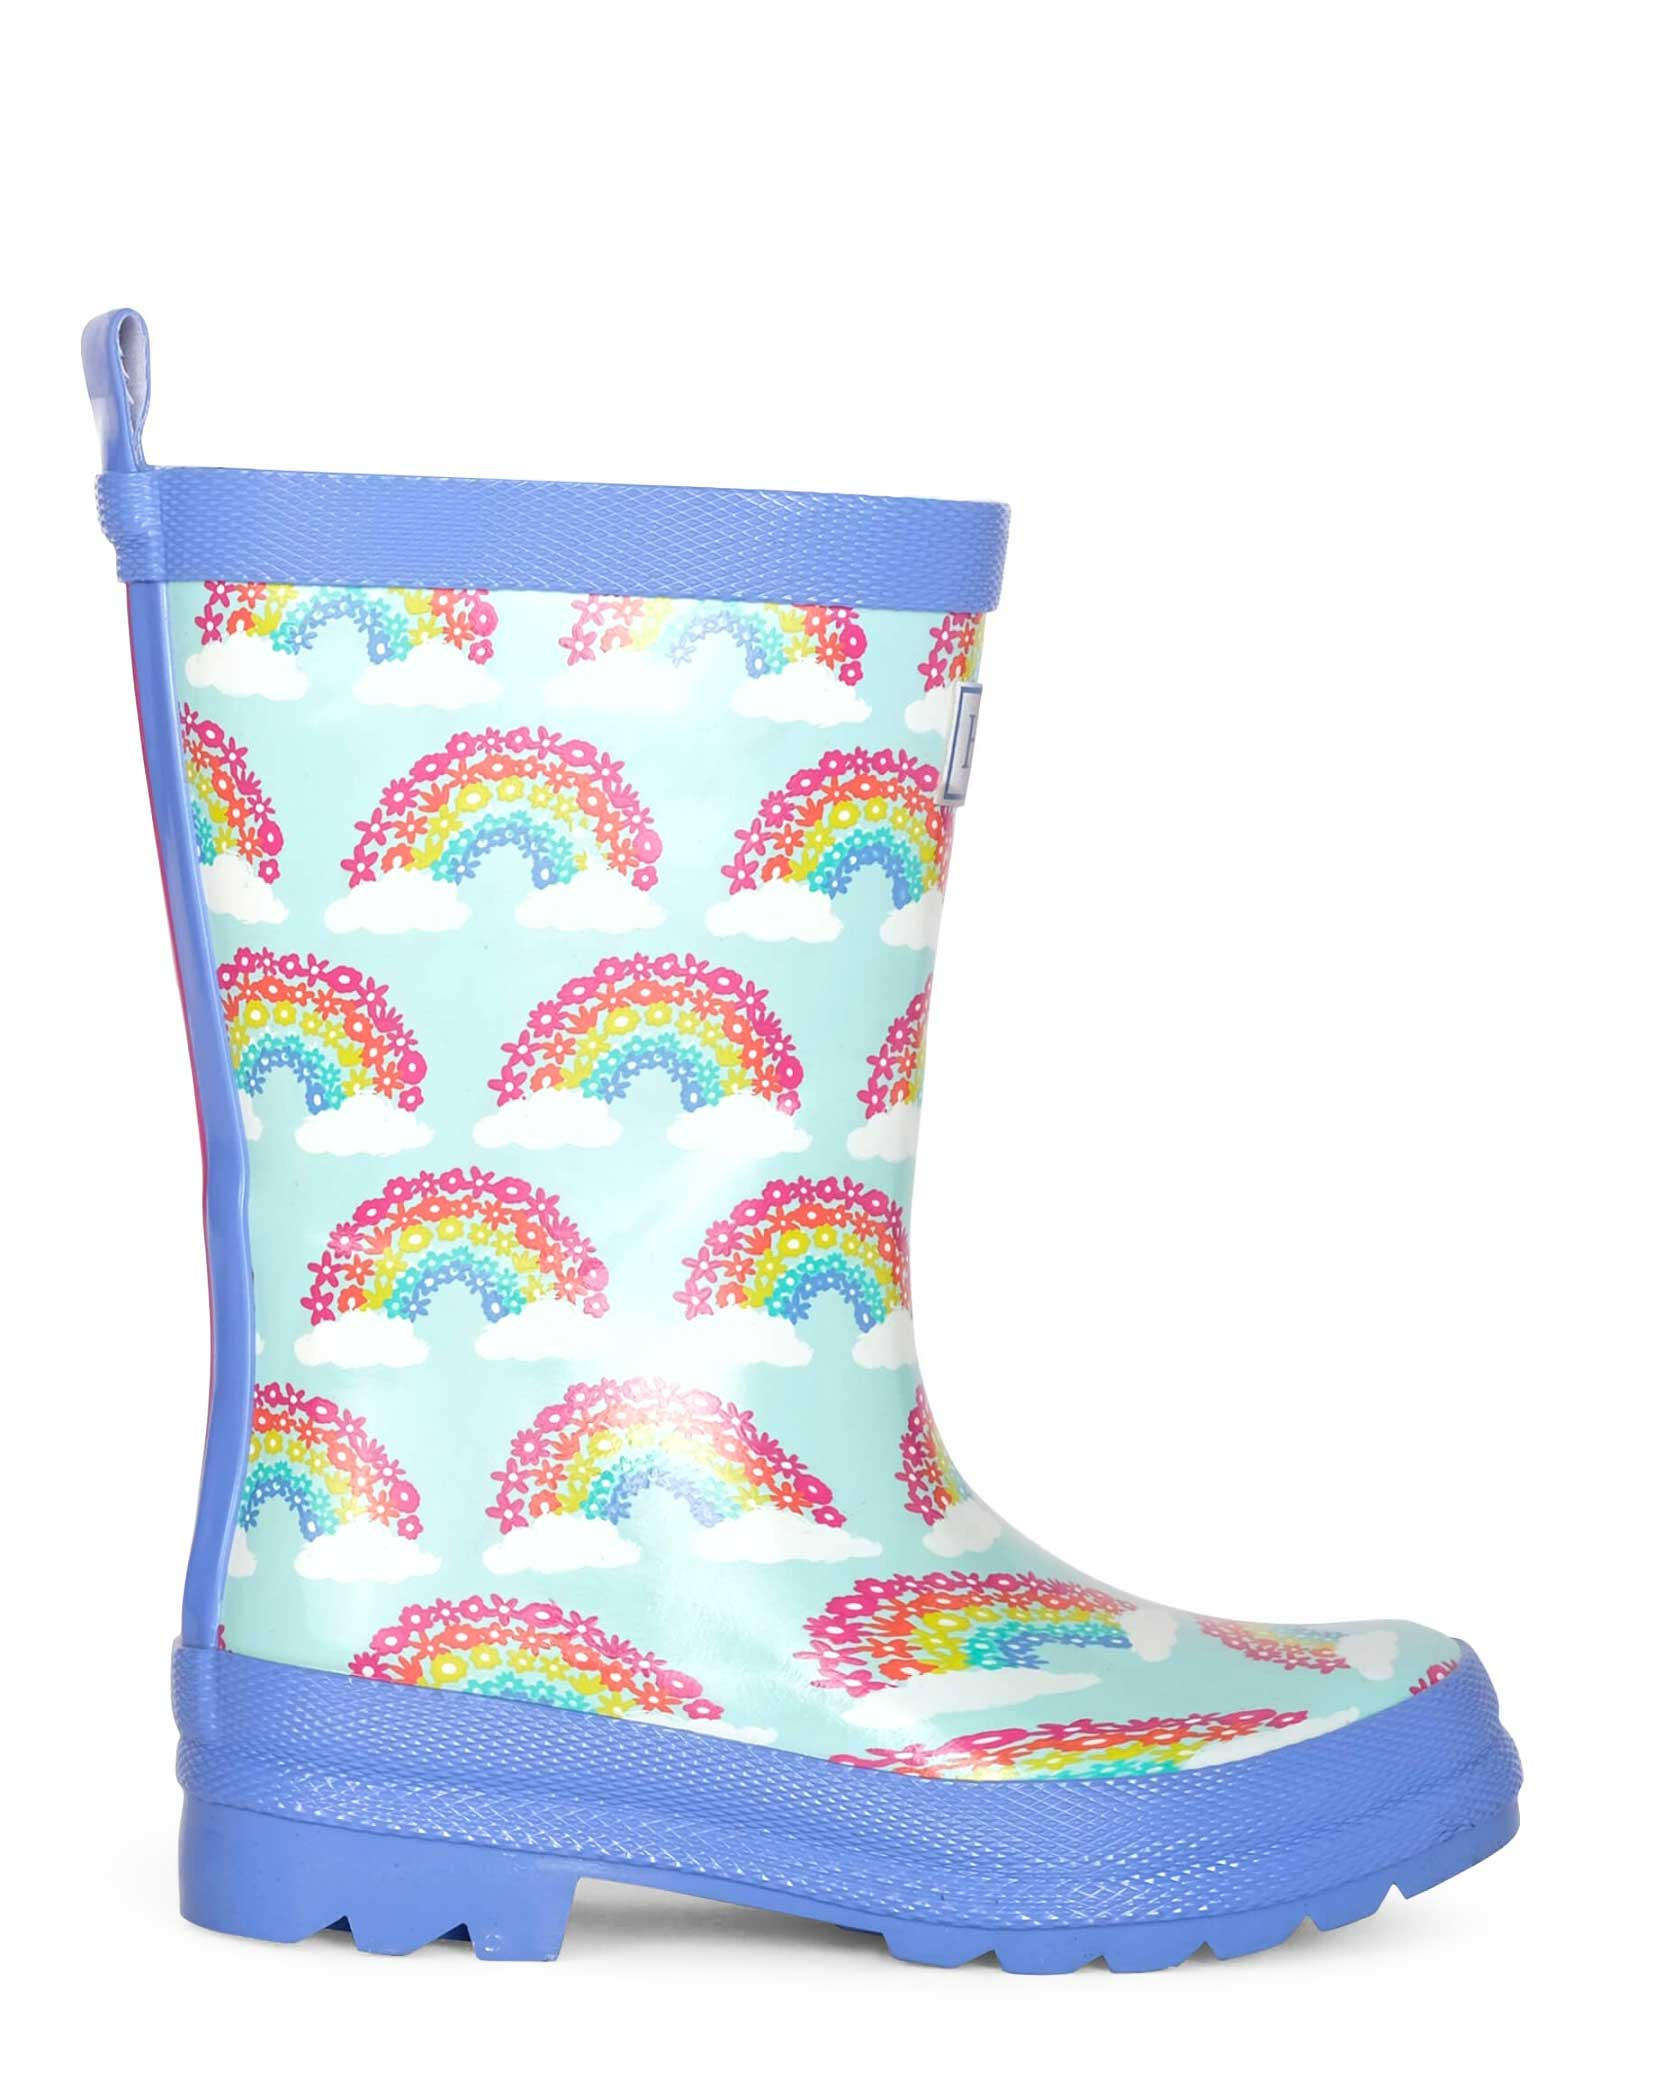 Magical Rainbows Shiny Gumboots